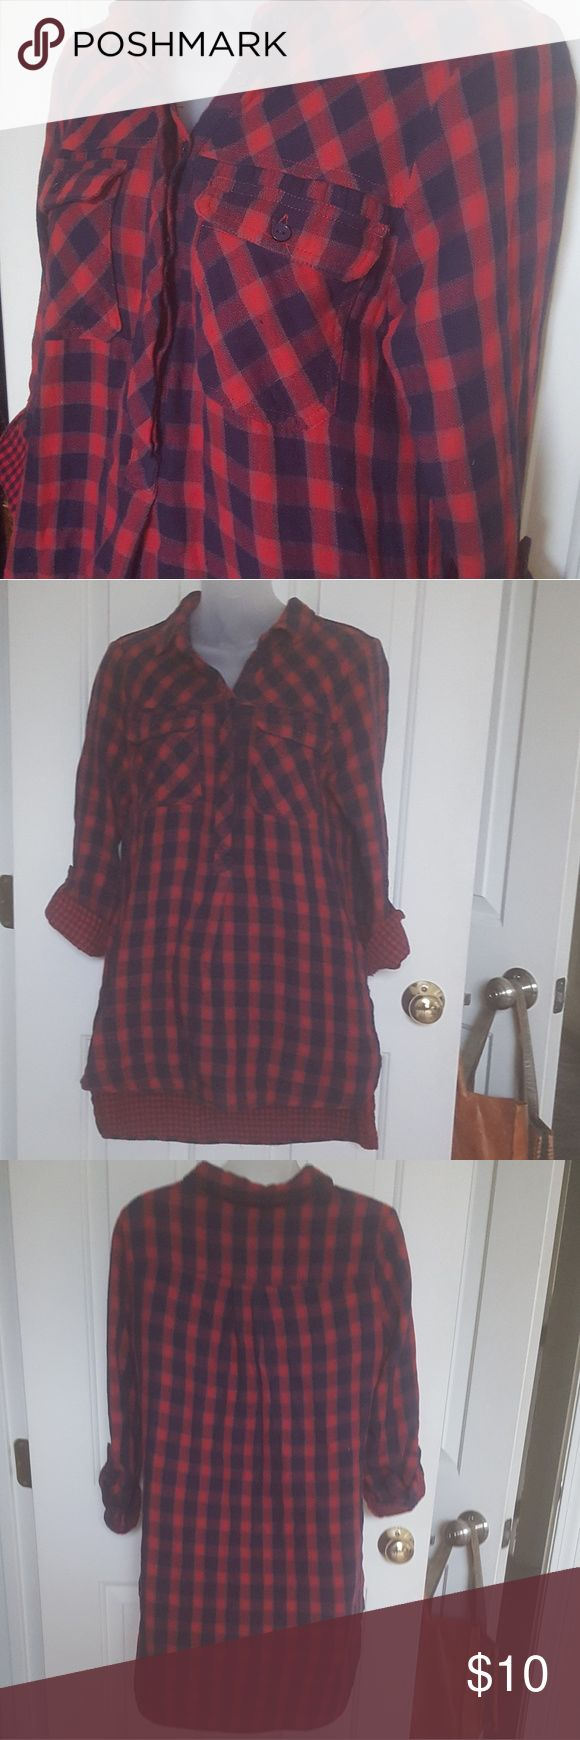 red/black ladies flannel shirt Cute, cozy & comfy! Perfect for chilly wintry days. Canyon River Blues Tops Blouses